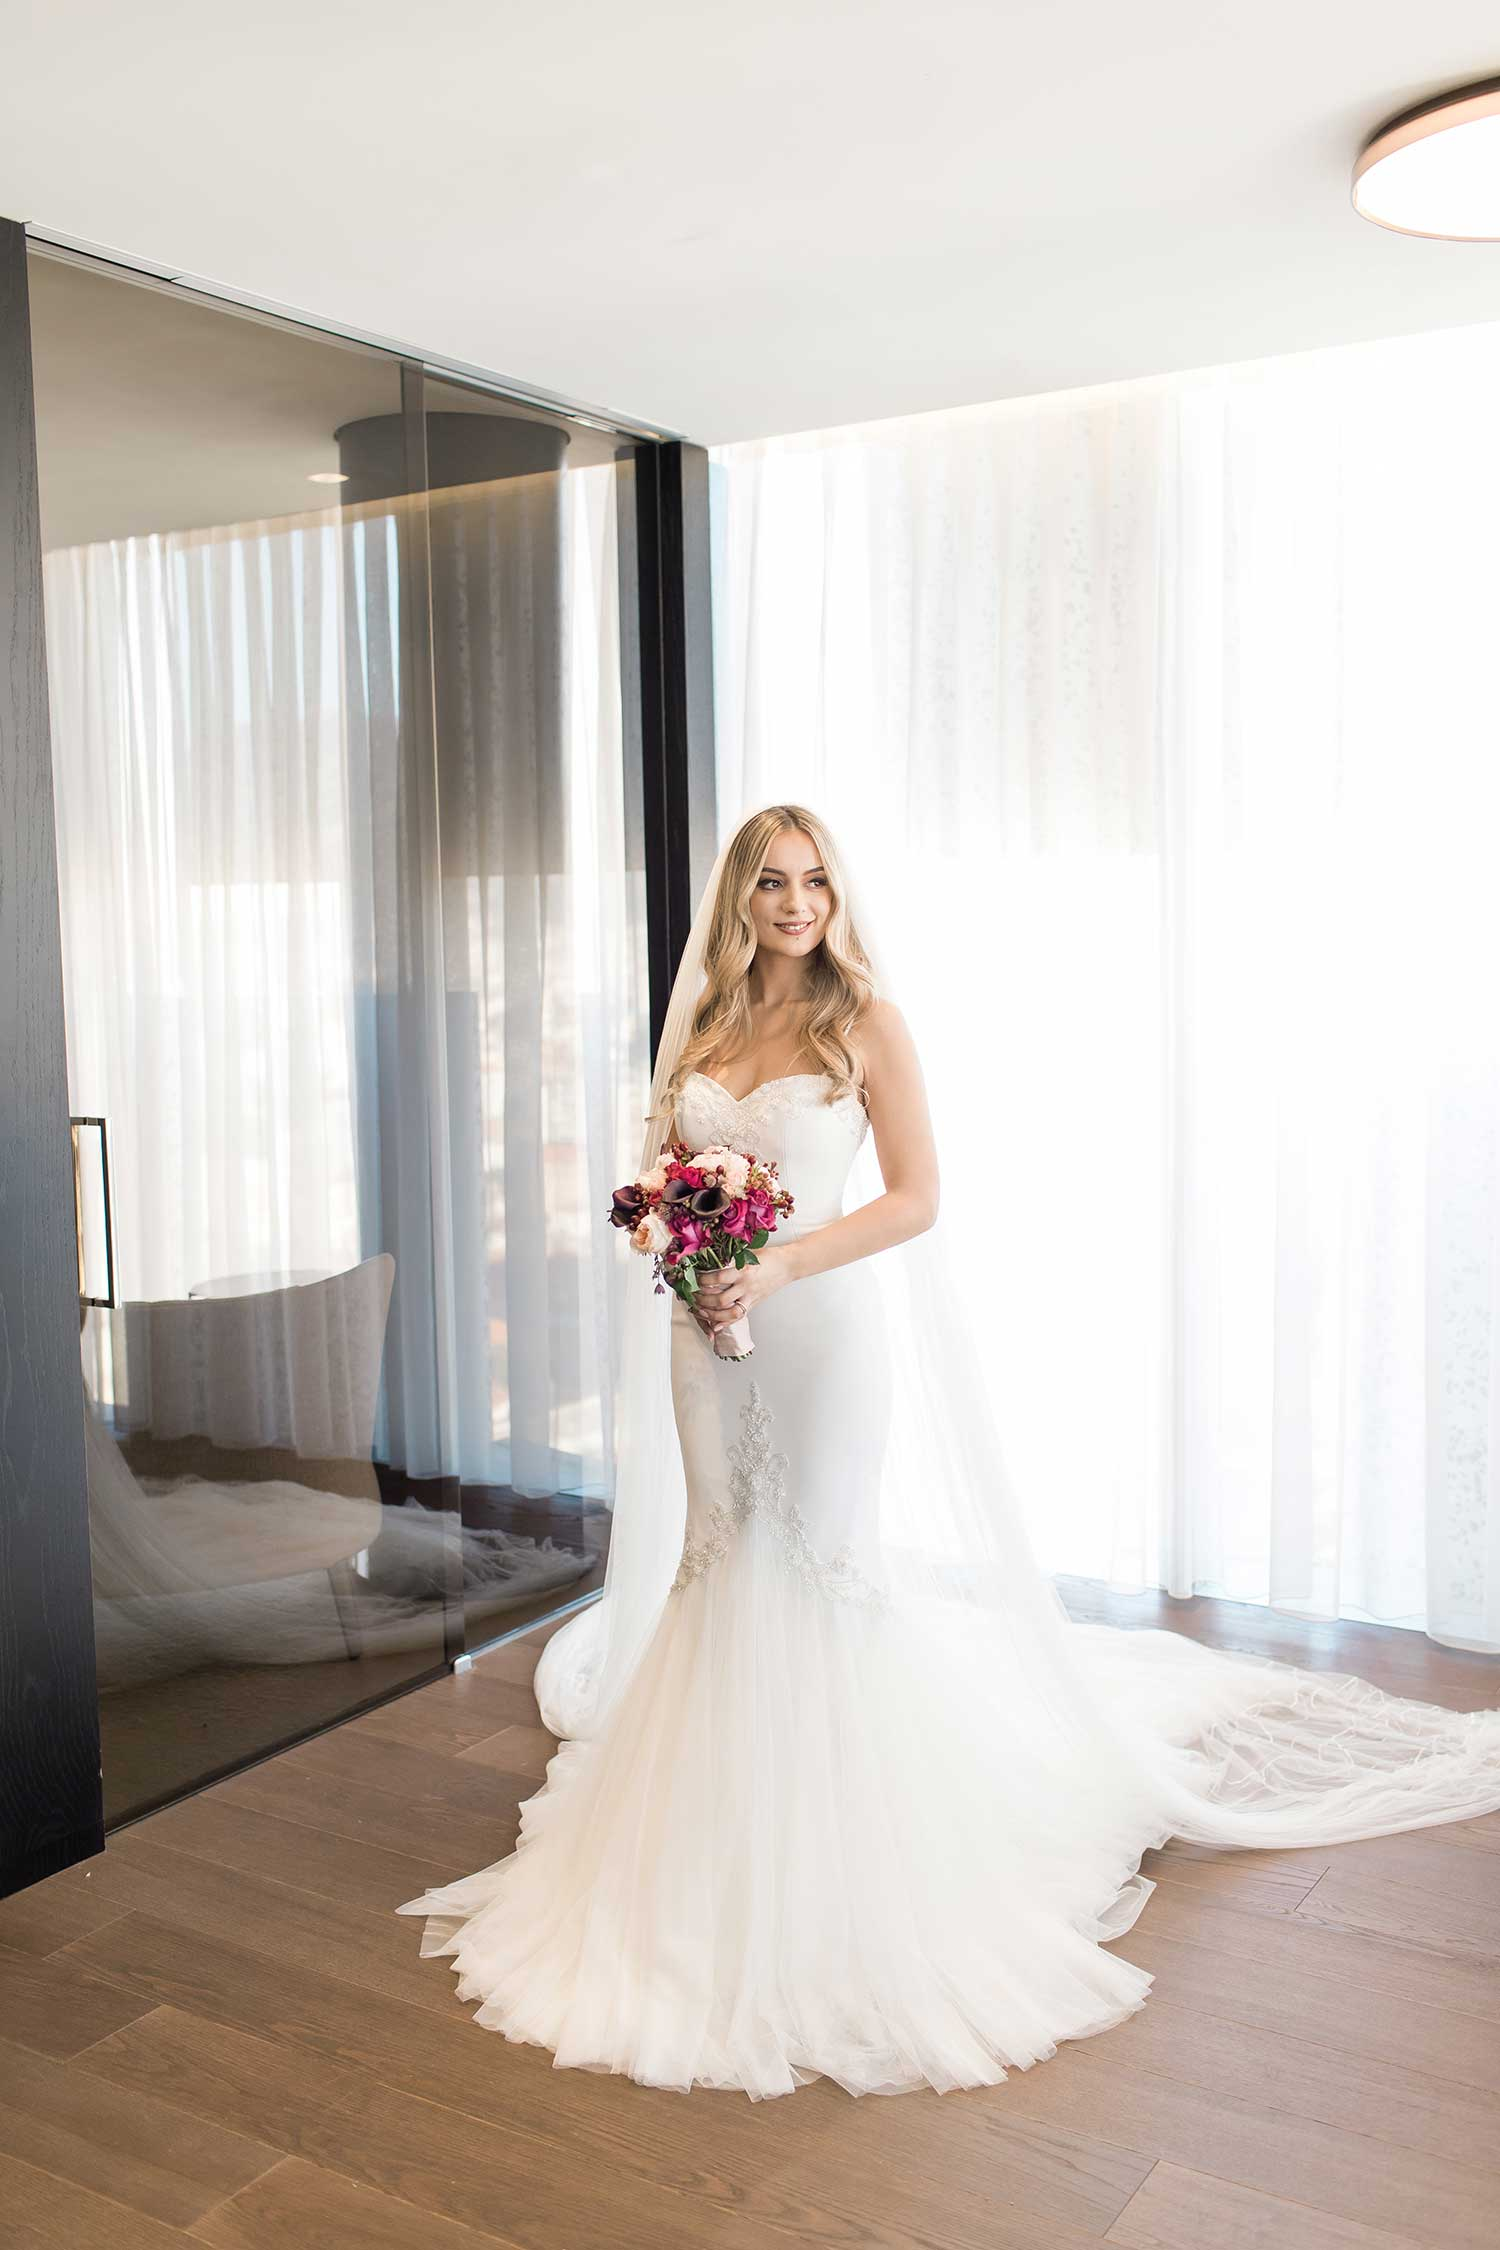 Bride with her white wedding dress,veil and flower bouquet